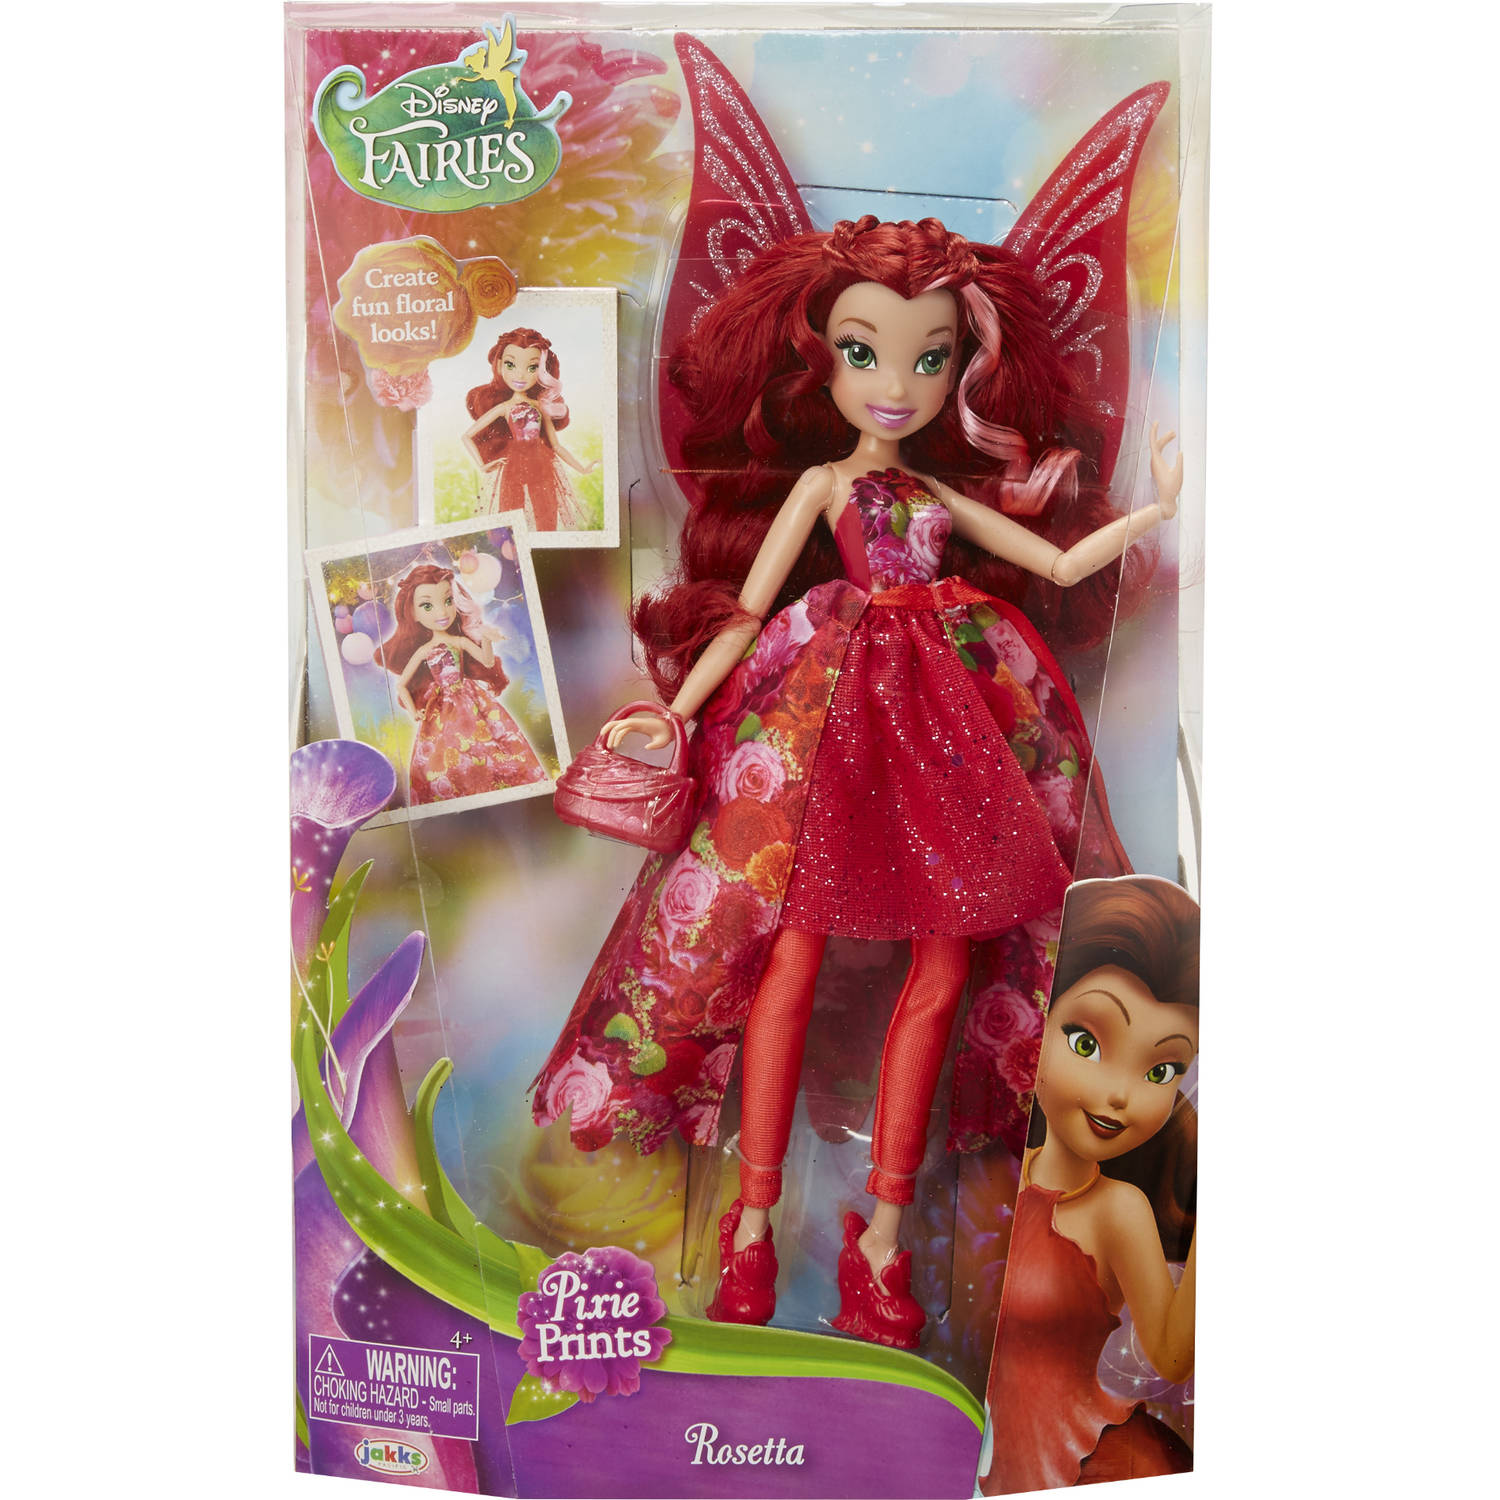 "Disney Fairy 9"" Rosetta Deluxe Fashion Doll, Floral"